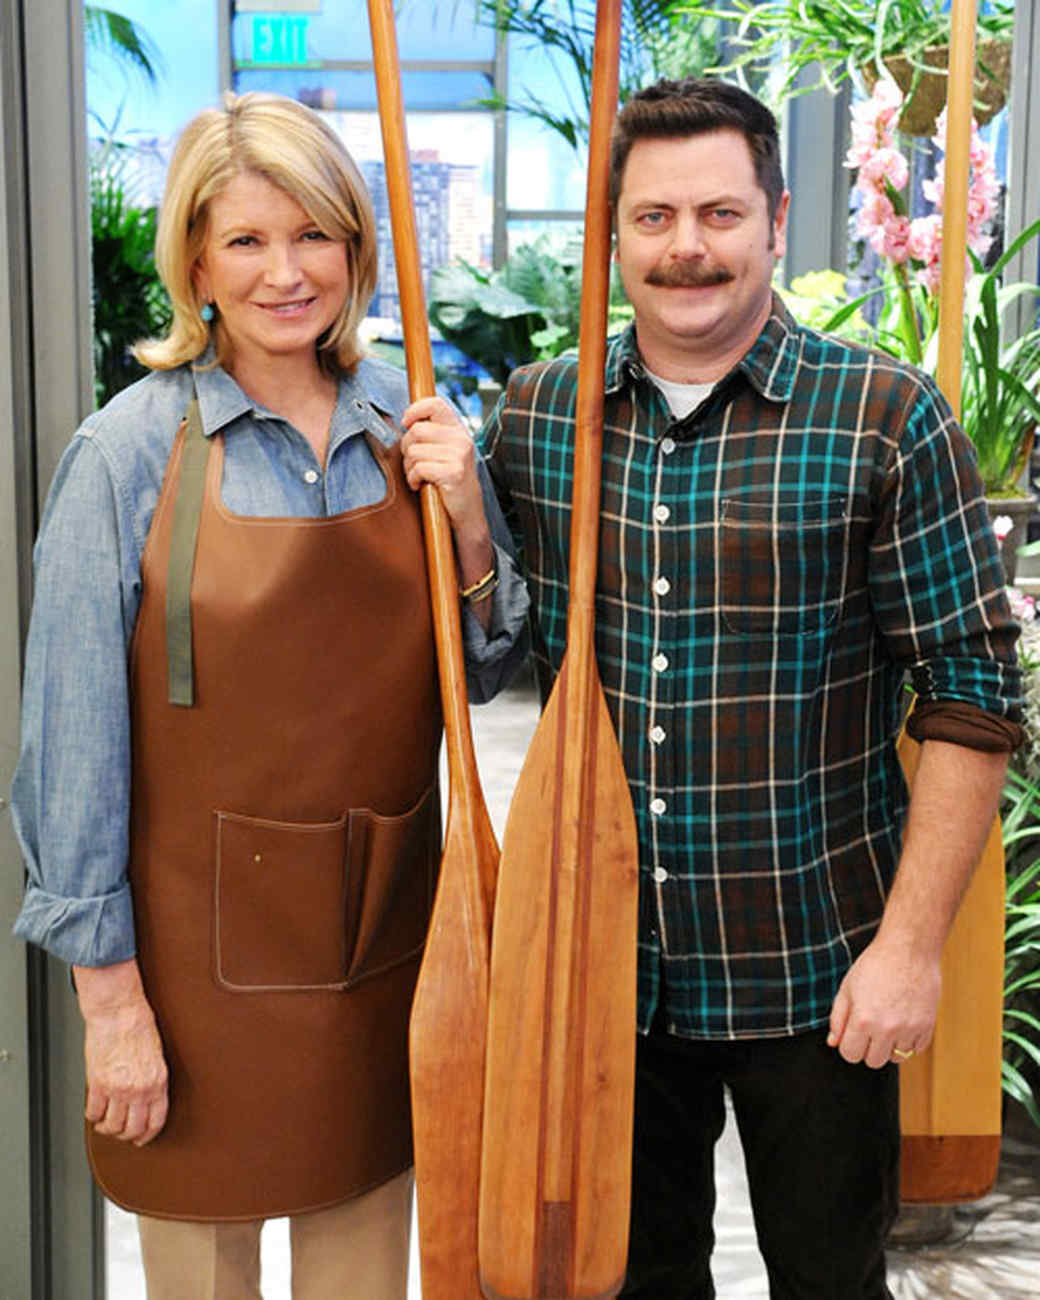 6085_012111_martha_nick_offerman.jpg